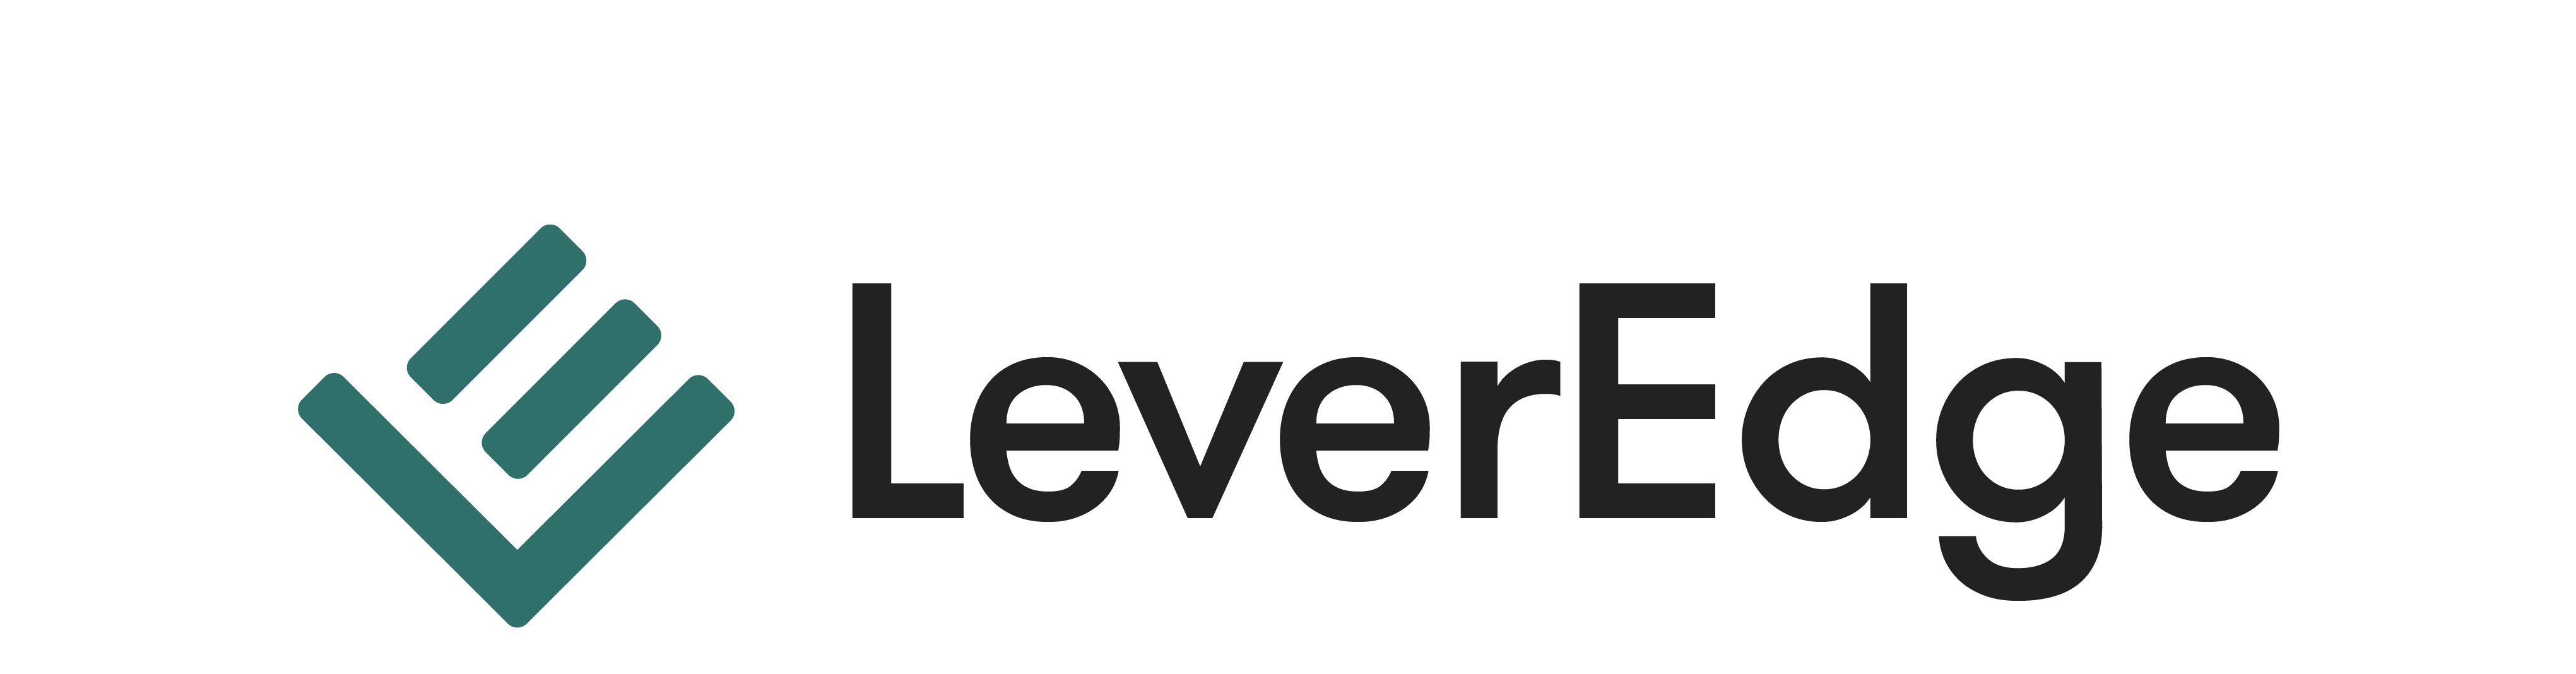 LeverEdge logo